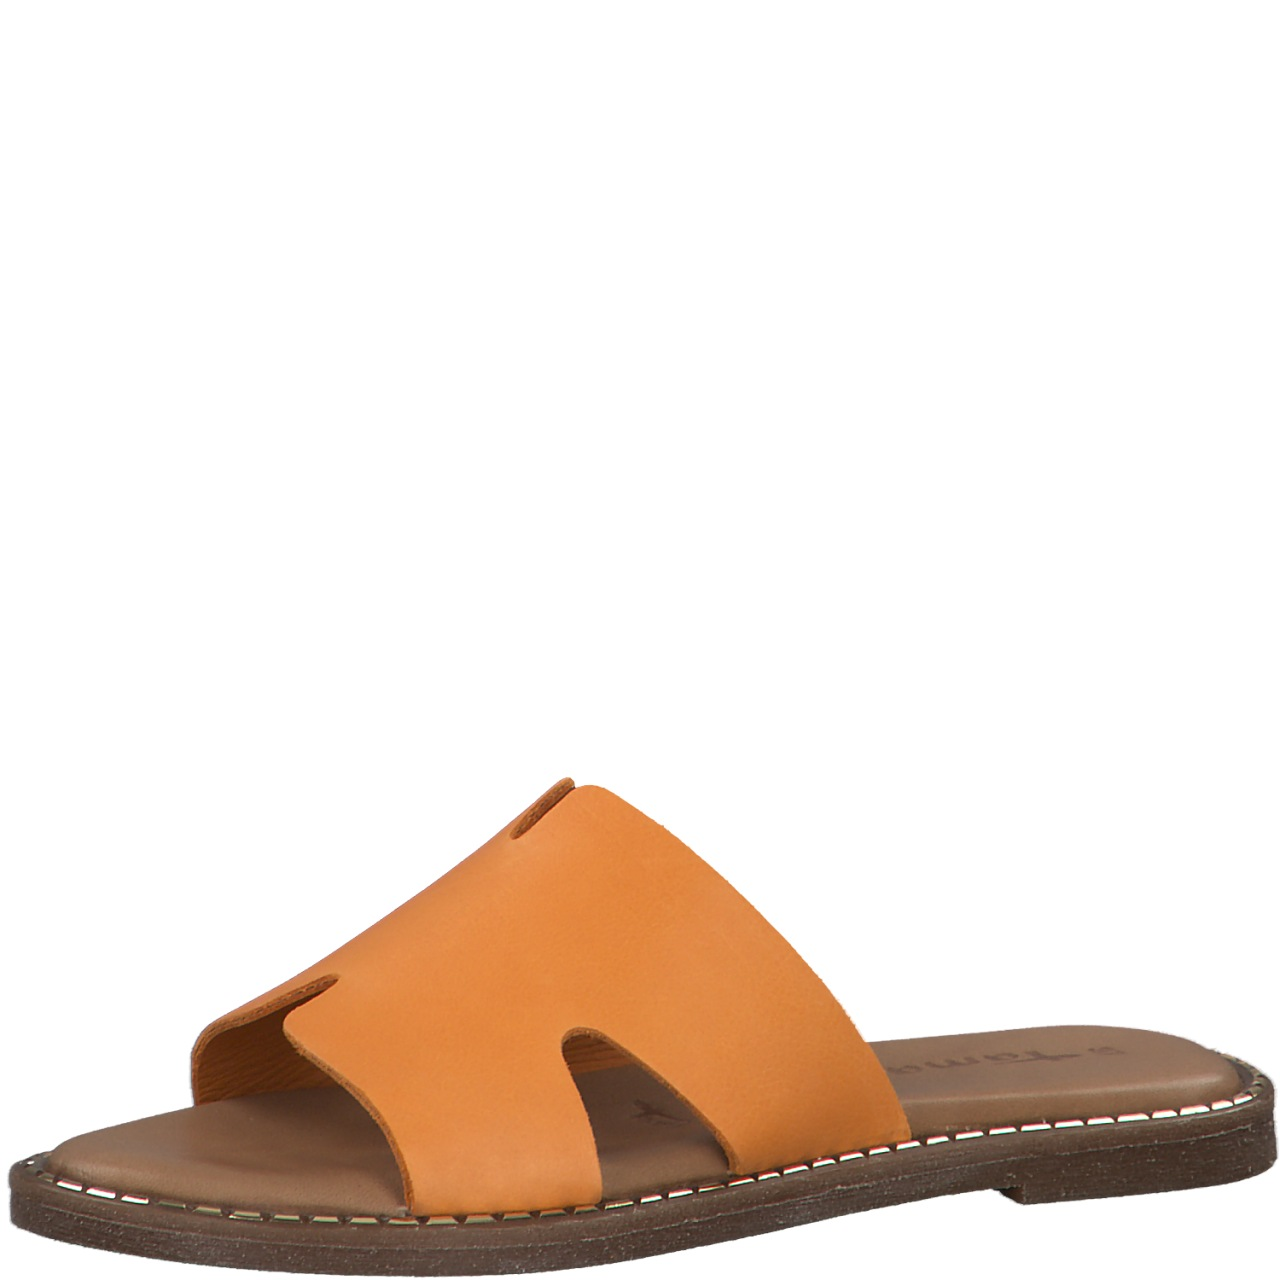 Berwick upon Tweed-Lime Shoe Co-Tamaris-Sandal-Orange-mule-slip on-summer